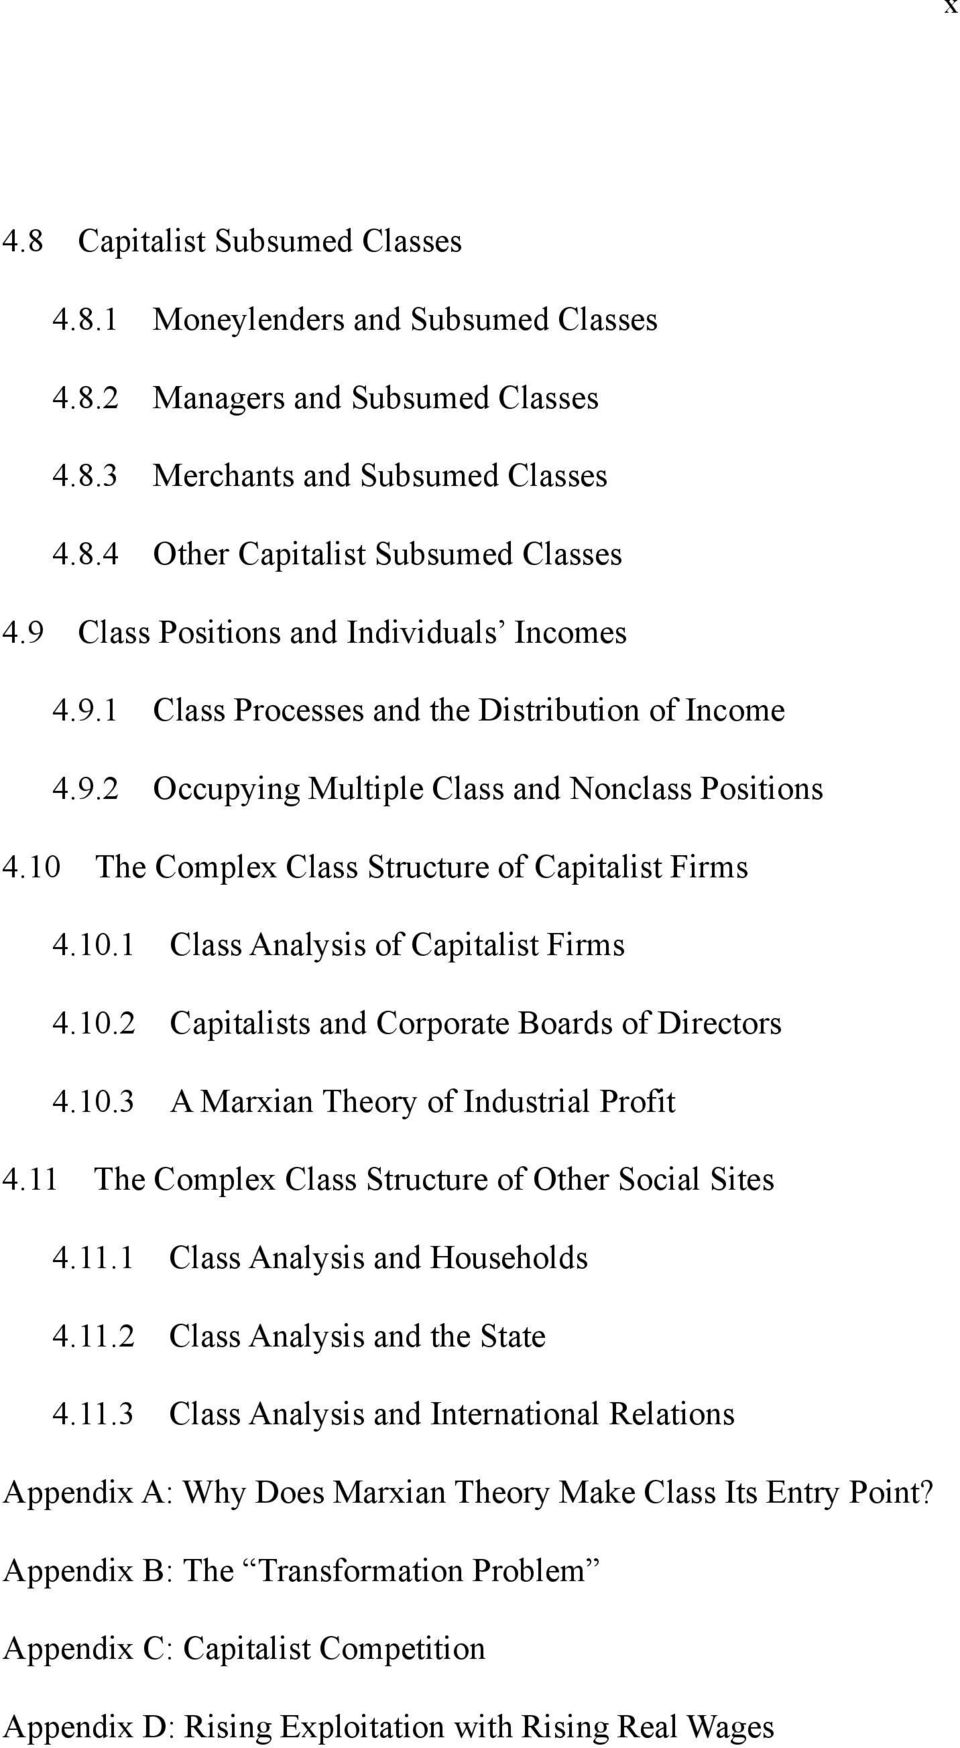 10 The Complex Class Structure of Capitalist Firms 4.10.1 Class Analysis of Capitalist Firms 4.10.2 Capitalists and Corporate Boards of Directors 4.10.3 A Marxian Theory of Industrial Profit 4.